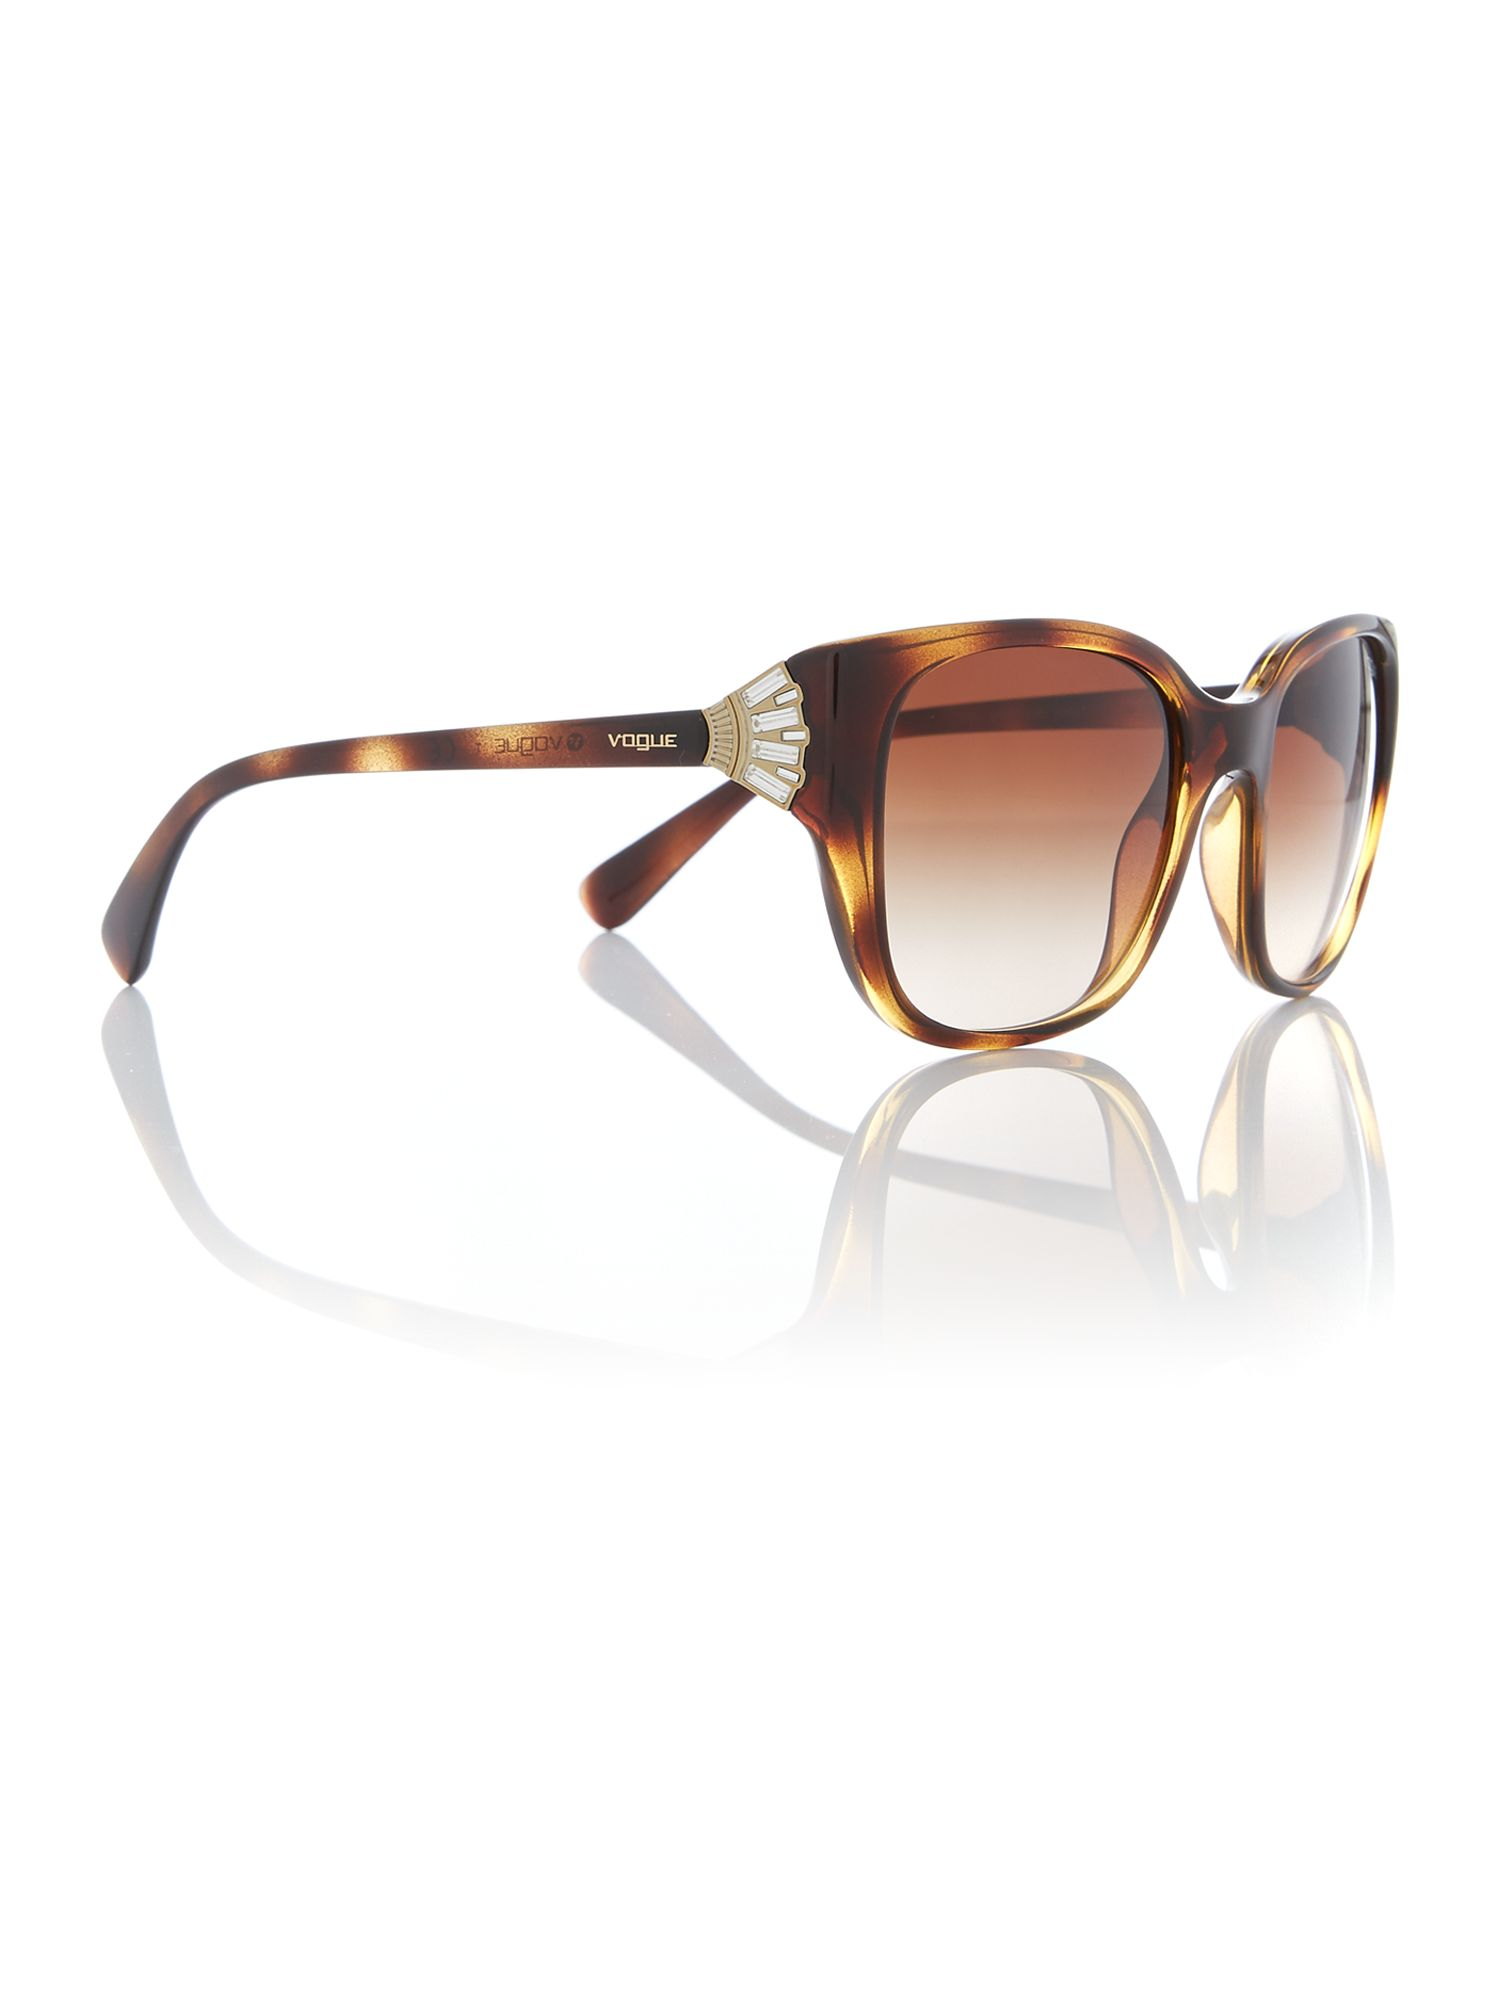 Vogue Havana square VO5061SB sunglasses